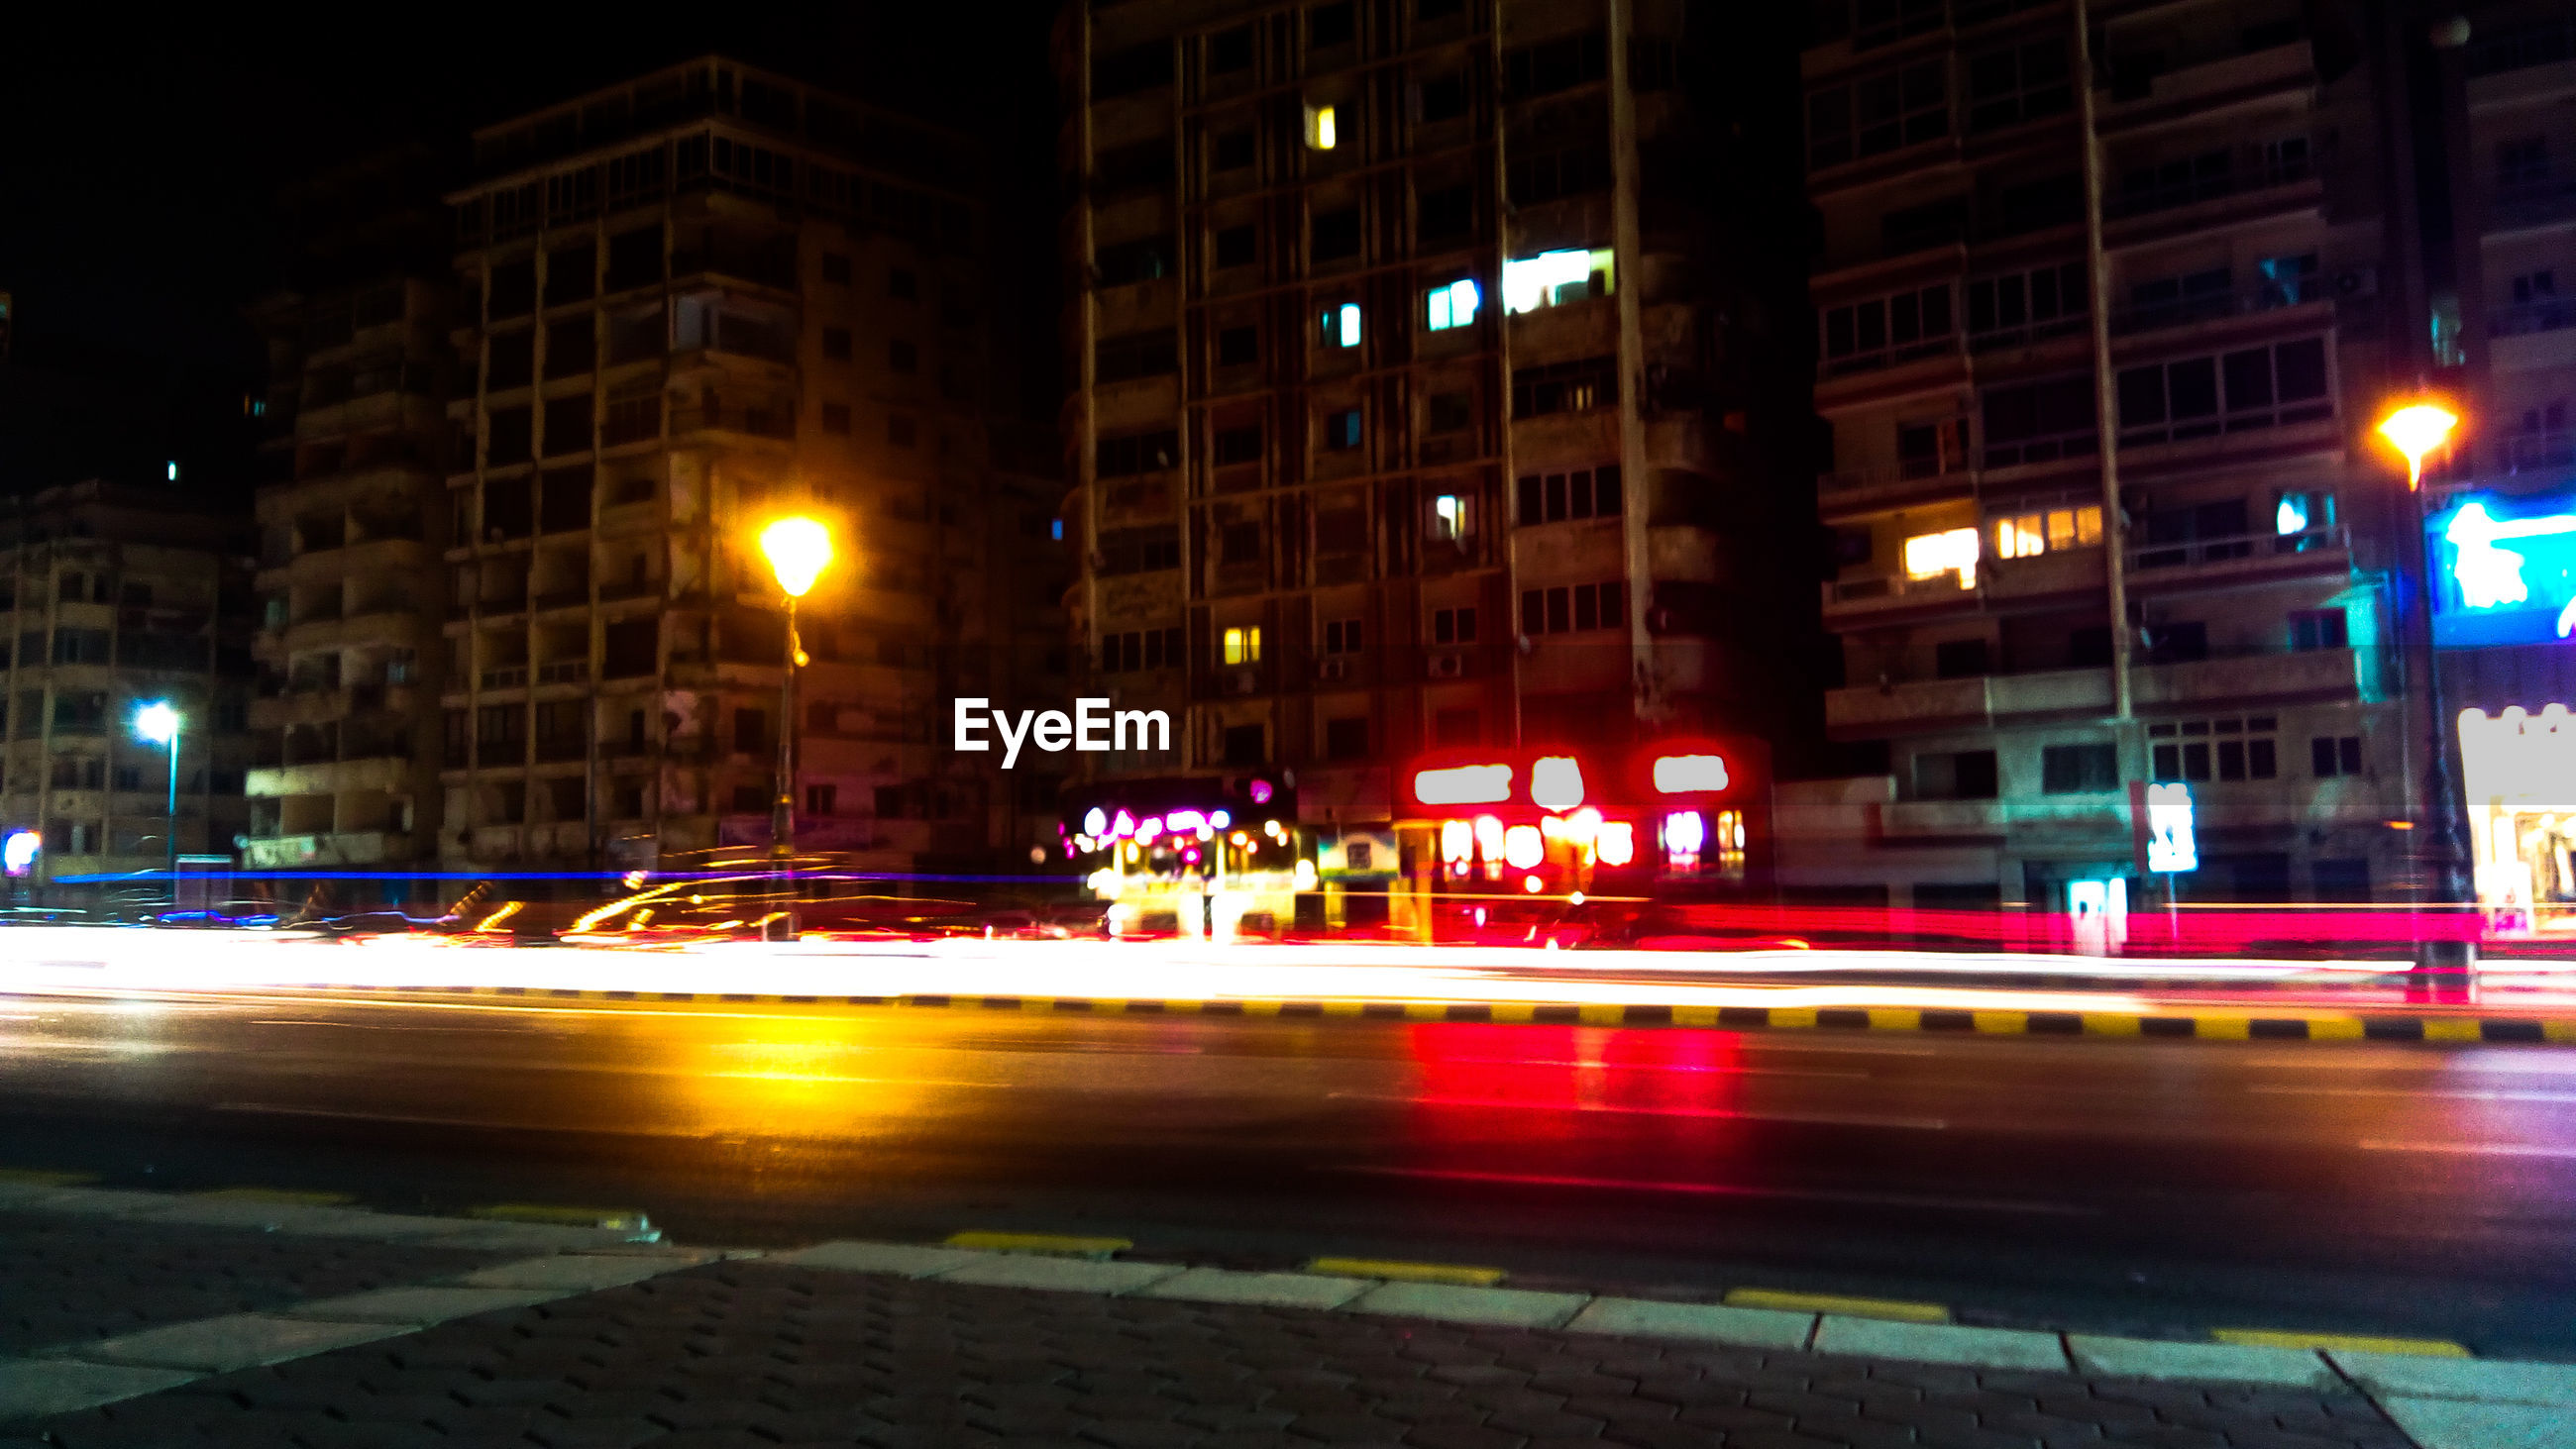 illuminated, night, building exterior, transportation, city, architecture, speed, street, motion, road, built structure, light trail, street light, long exposure, car, city life, high street, outdoors, no people